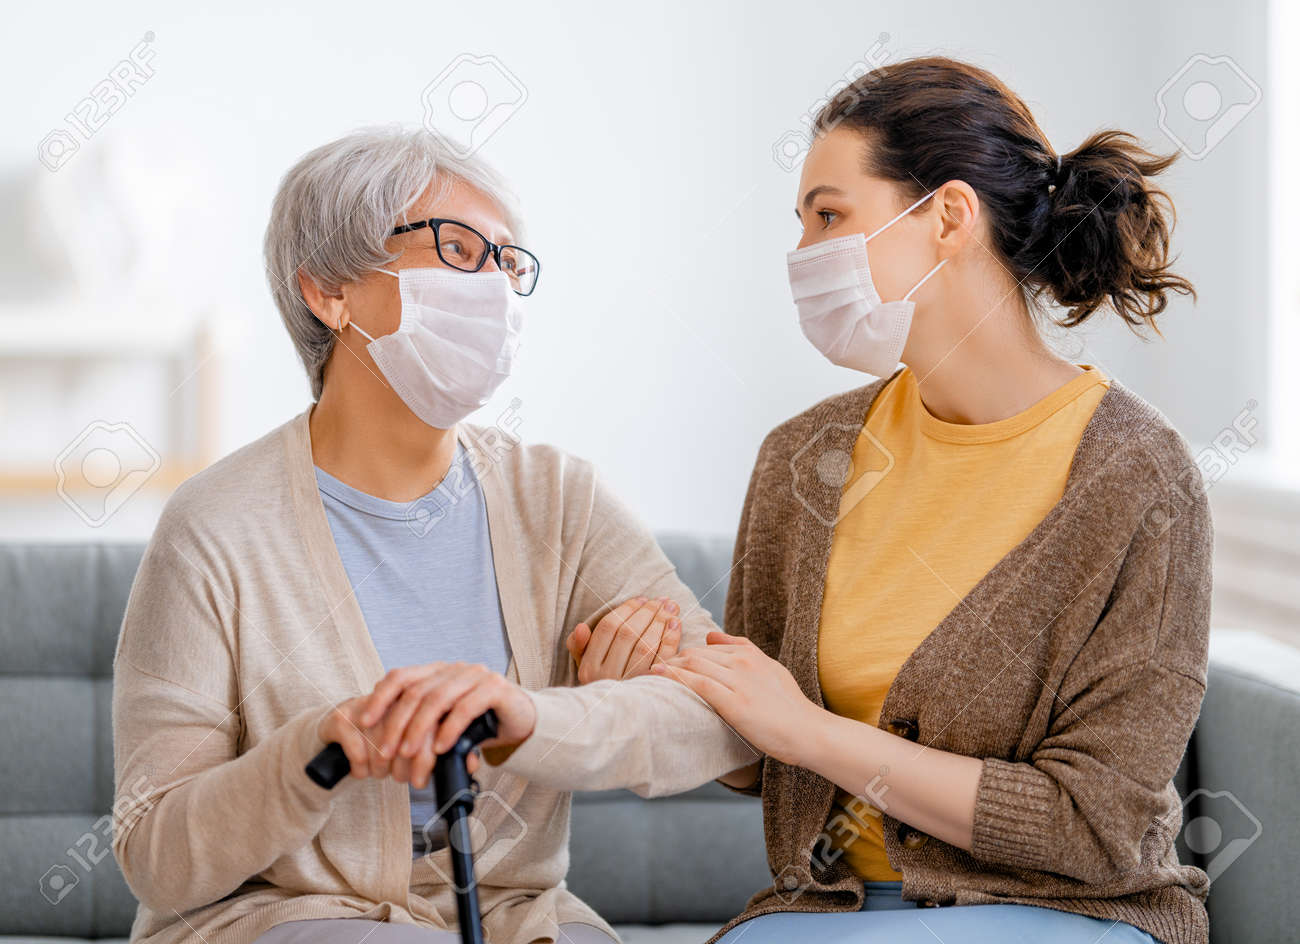 Adult daughter and senior parent wearing facemasks during flu outbreak. Help for the convalescent. - 164058189